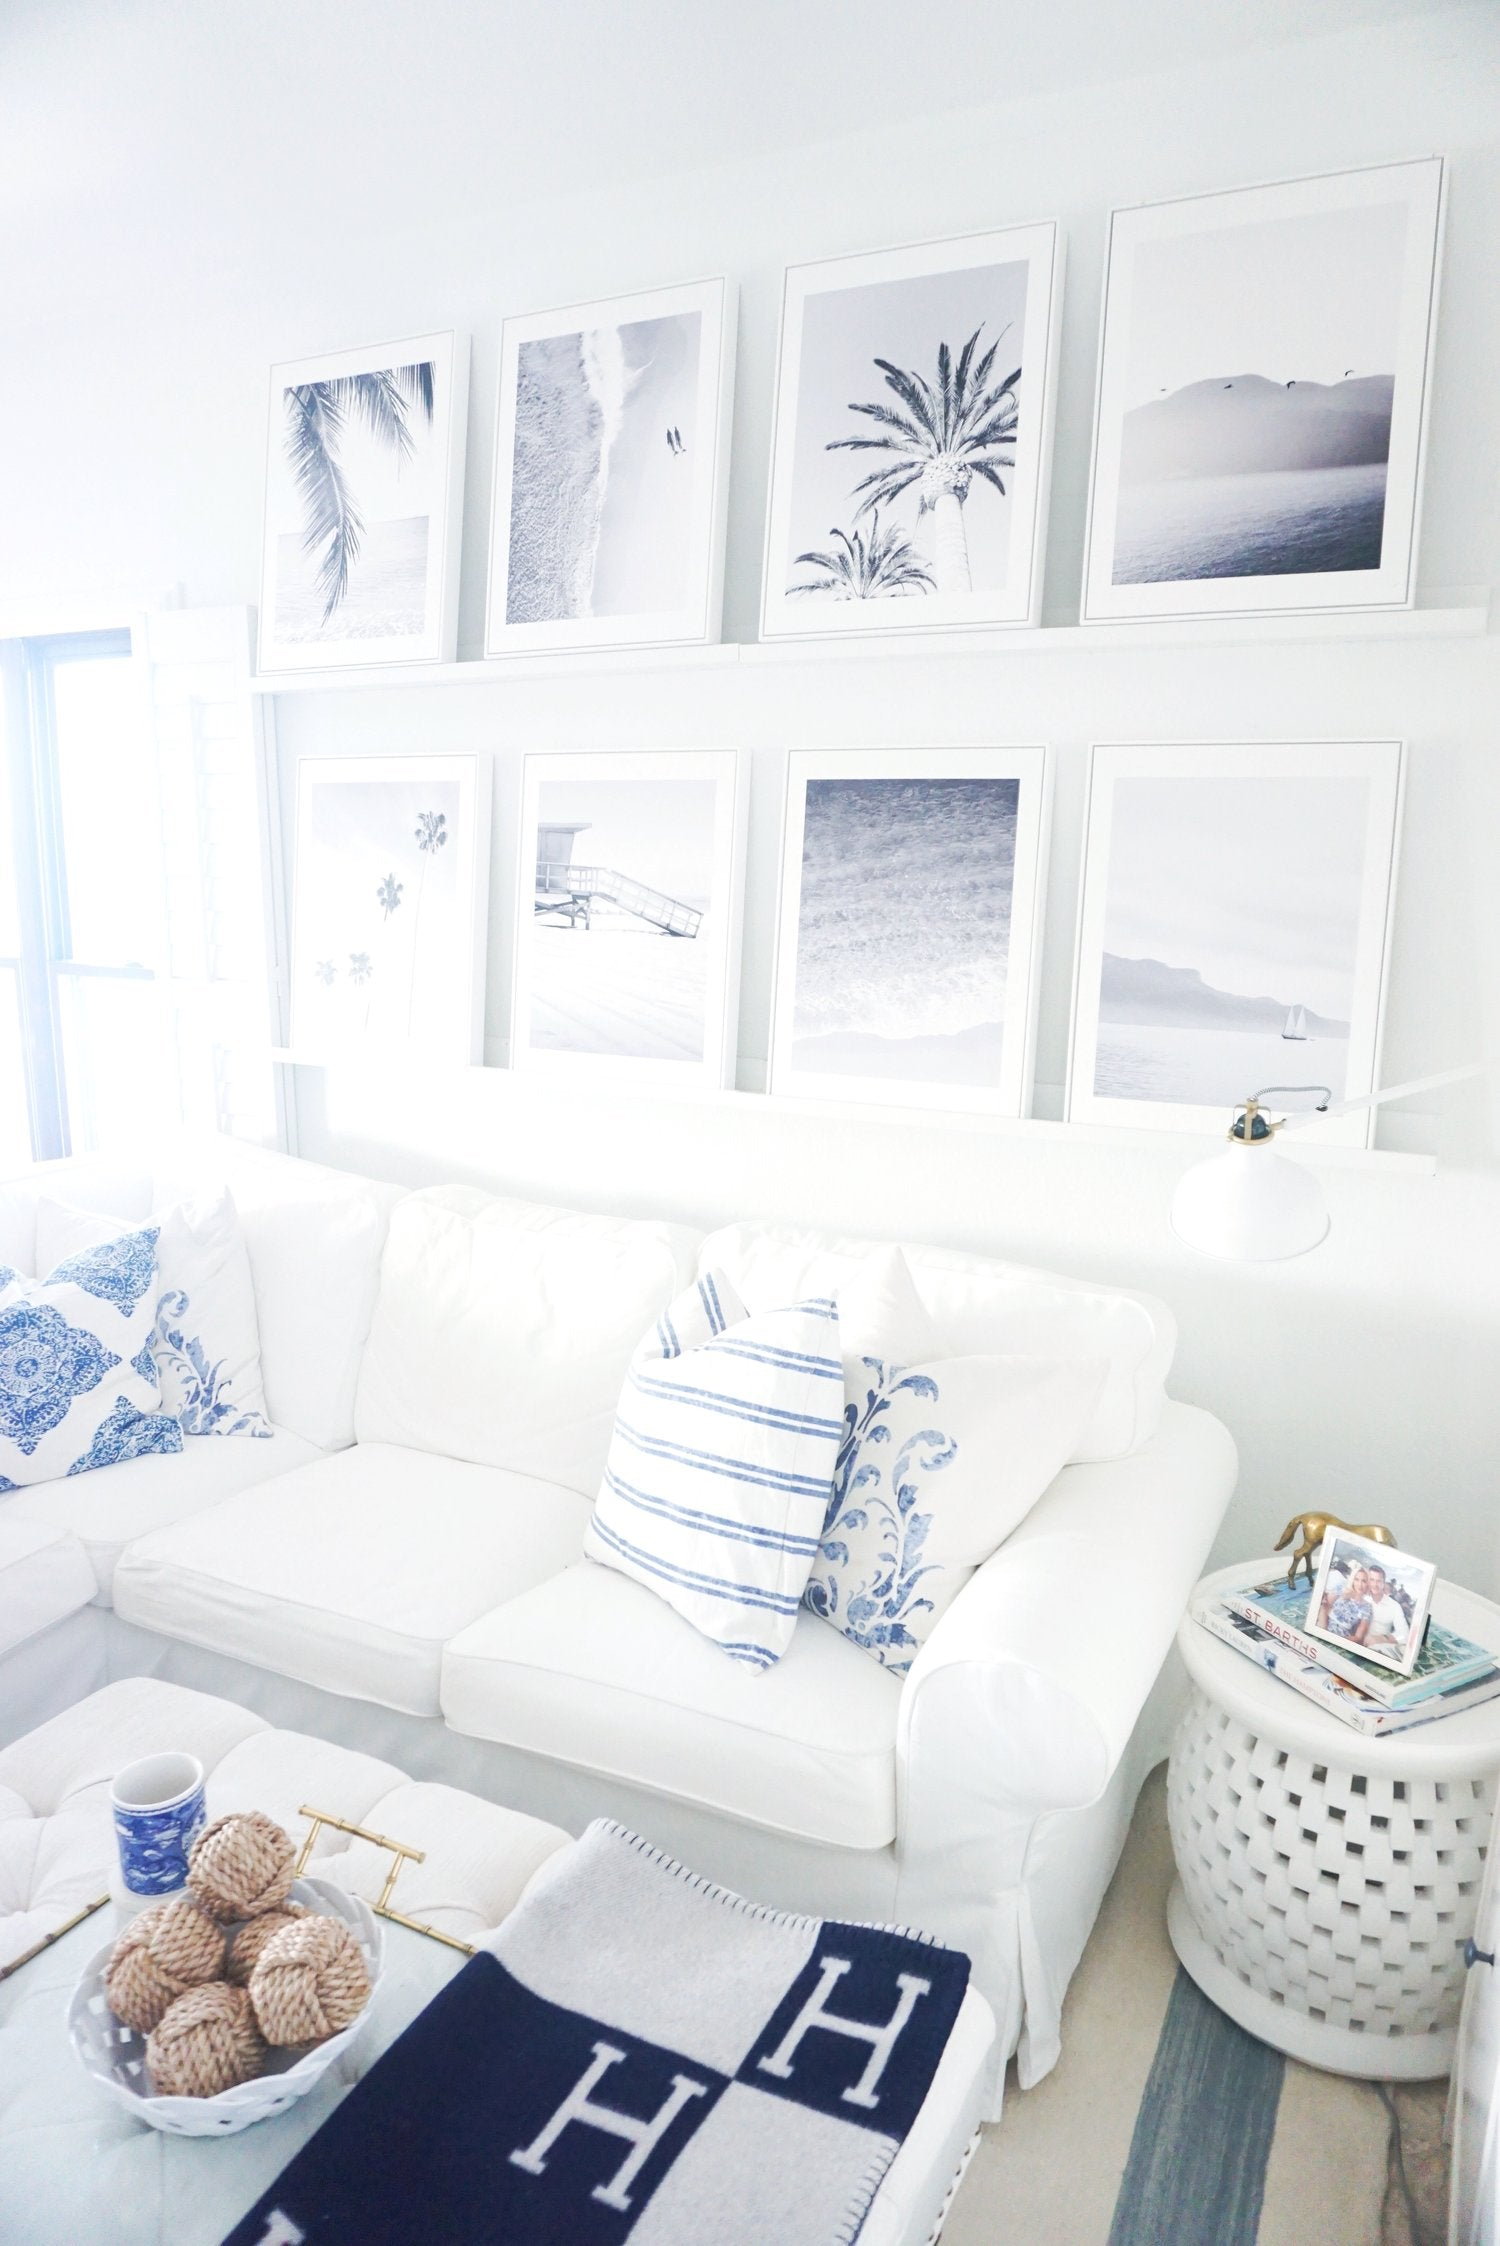 Gallery Wall of White Shadow Box Floater Frames Displayed in Living Room